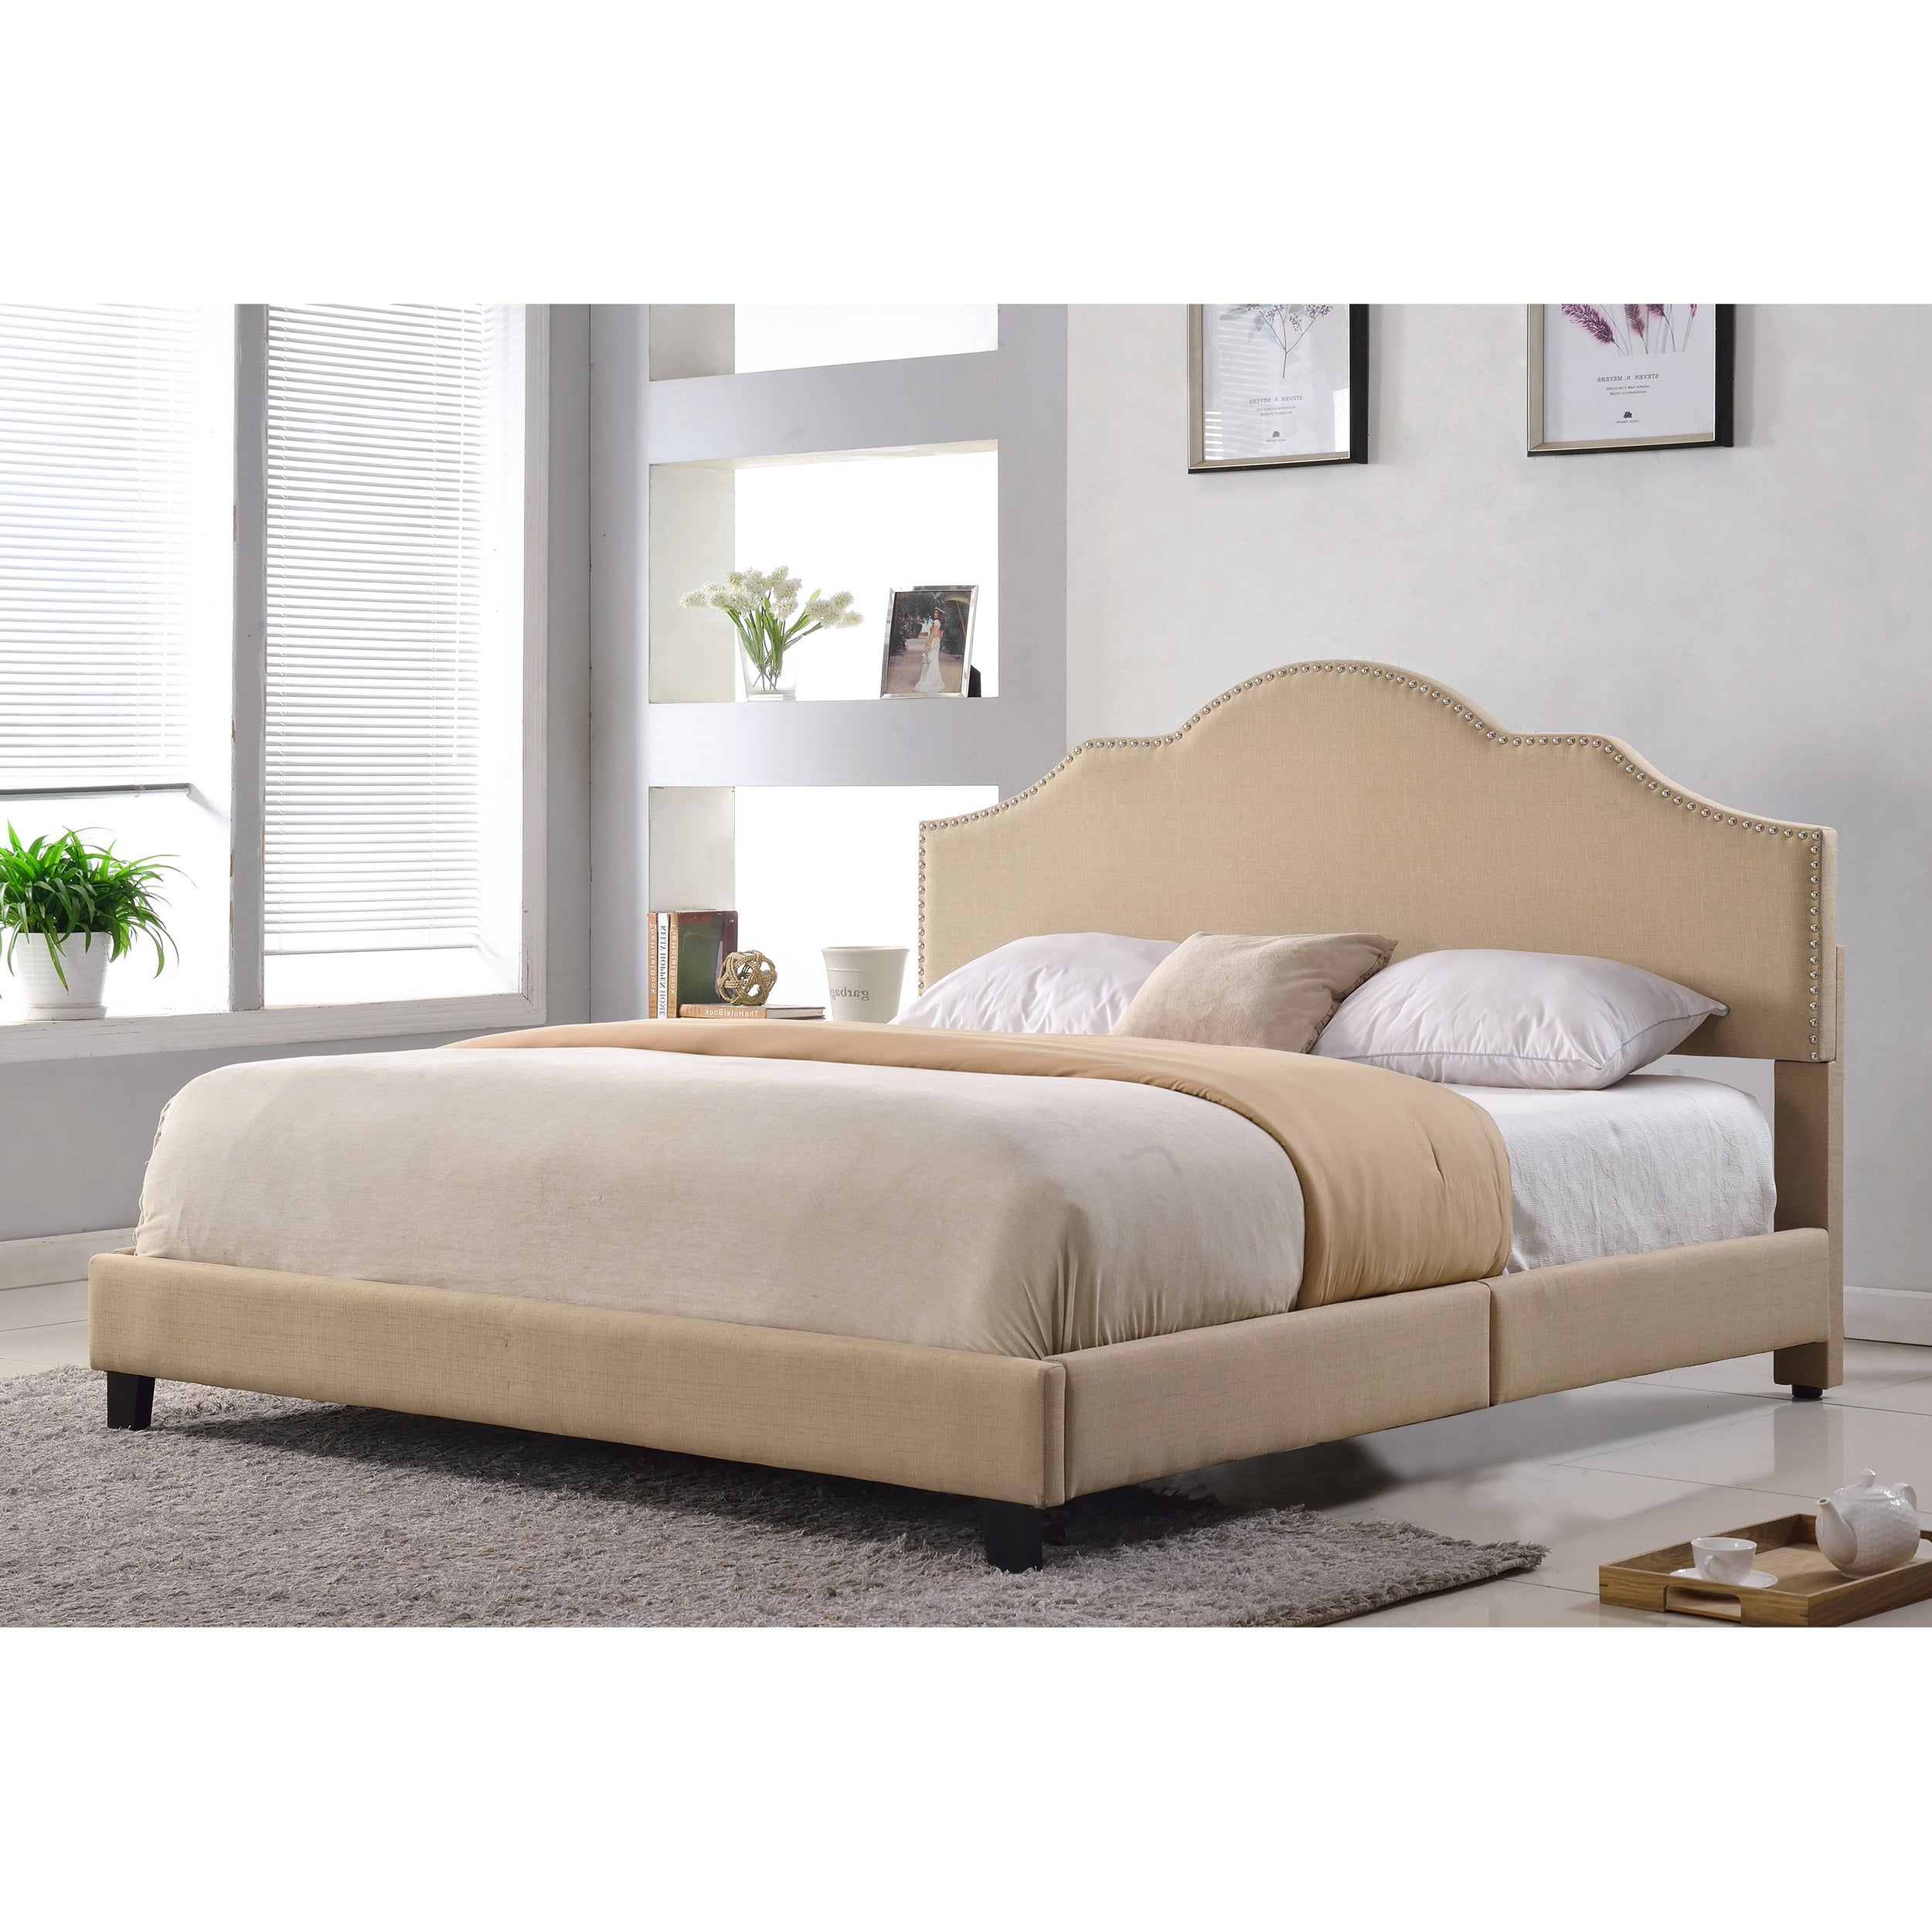 Abbyson Richmond Upholstered Queen Size Bed  Free Shipping Today